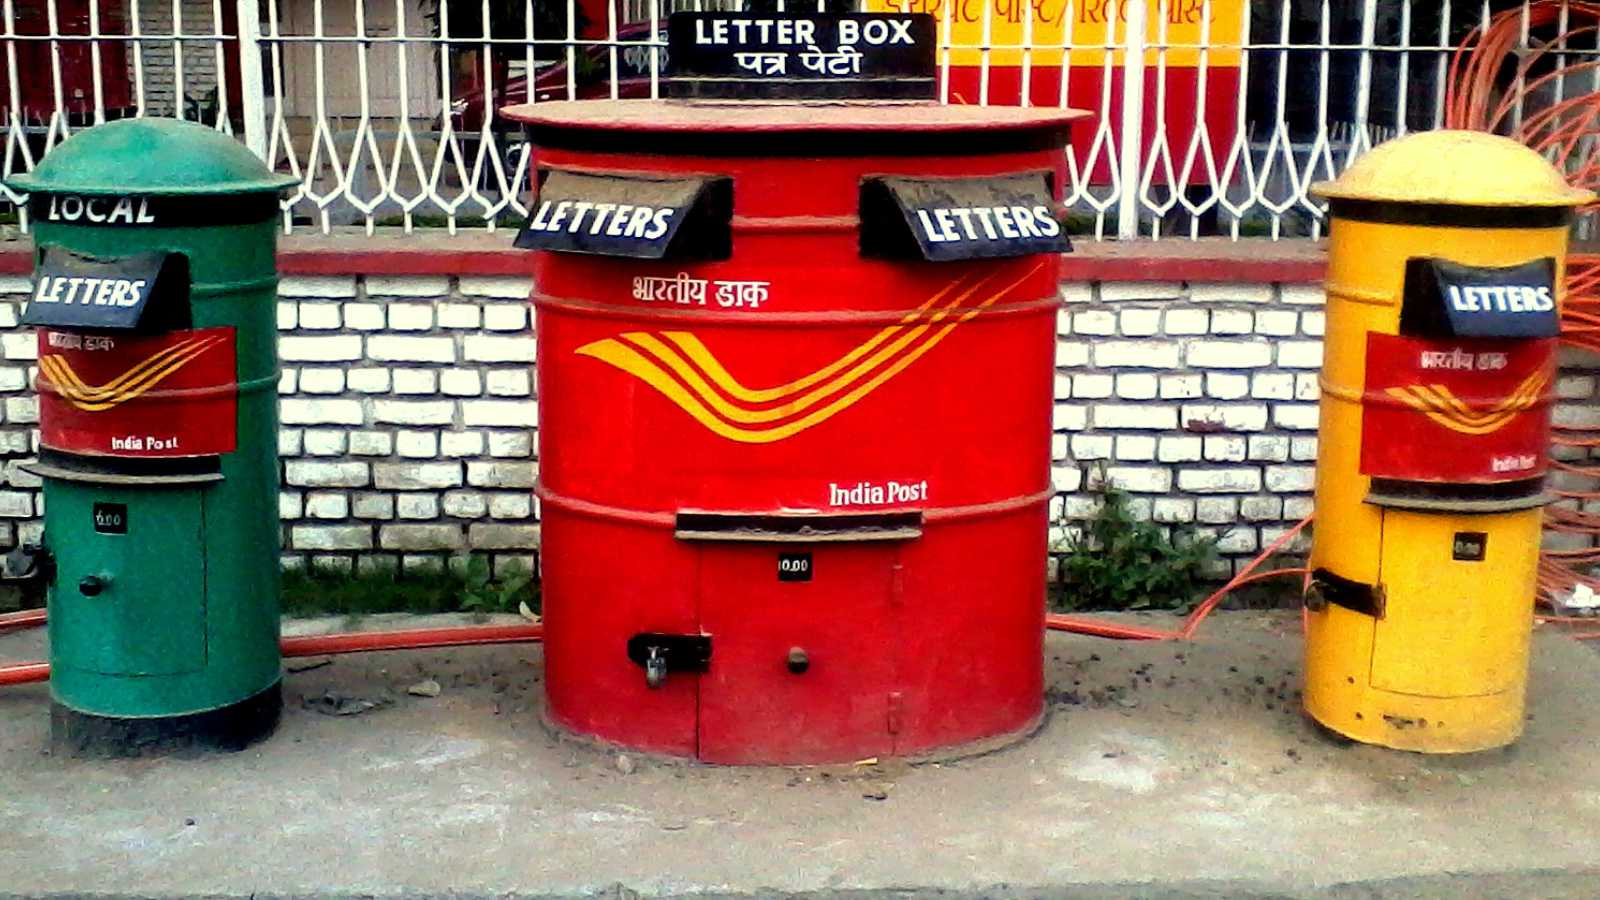 A New Way to Look at Indian Post Office Image